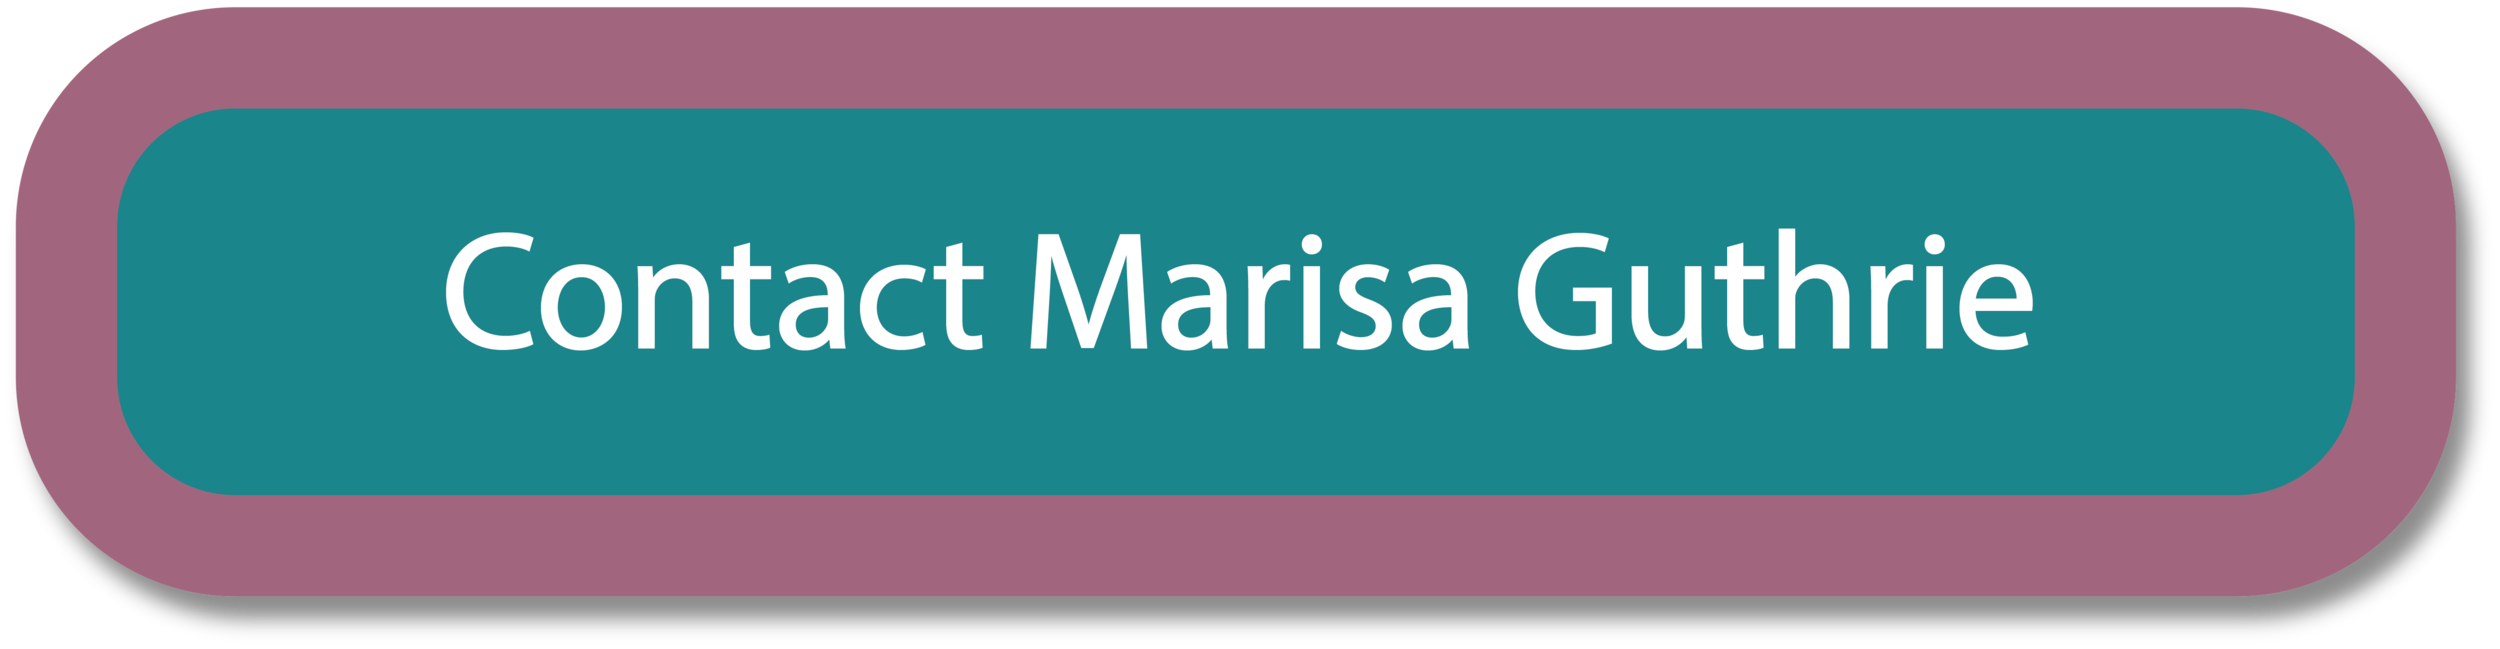 Contact Marisa Guthrie button on Business Coach Sussex website by 100Designs